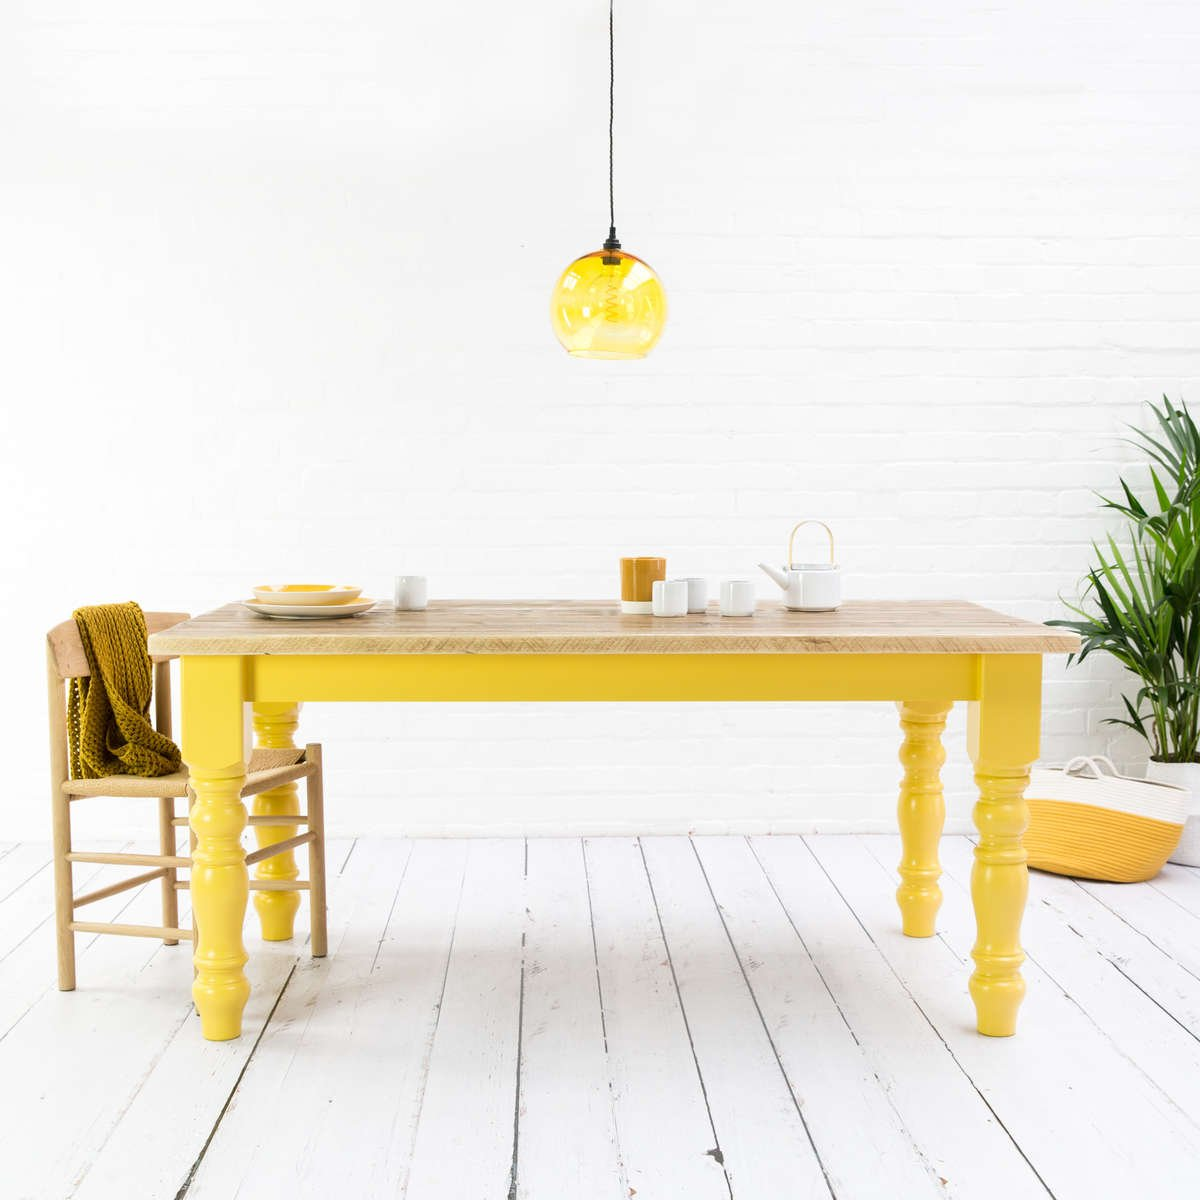 Farmhouse table - Farmhouse Table Company